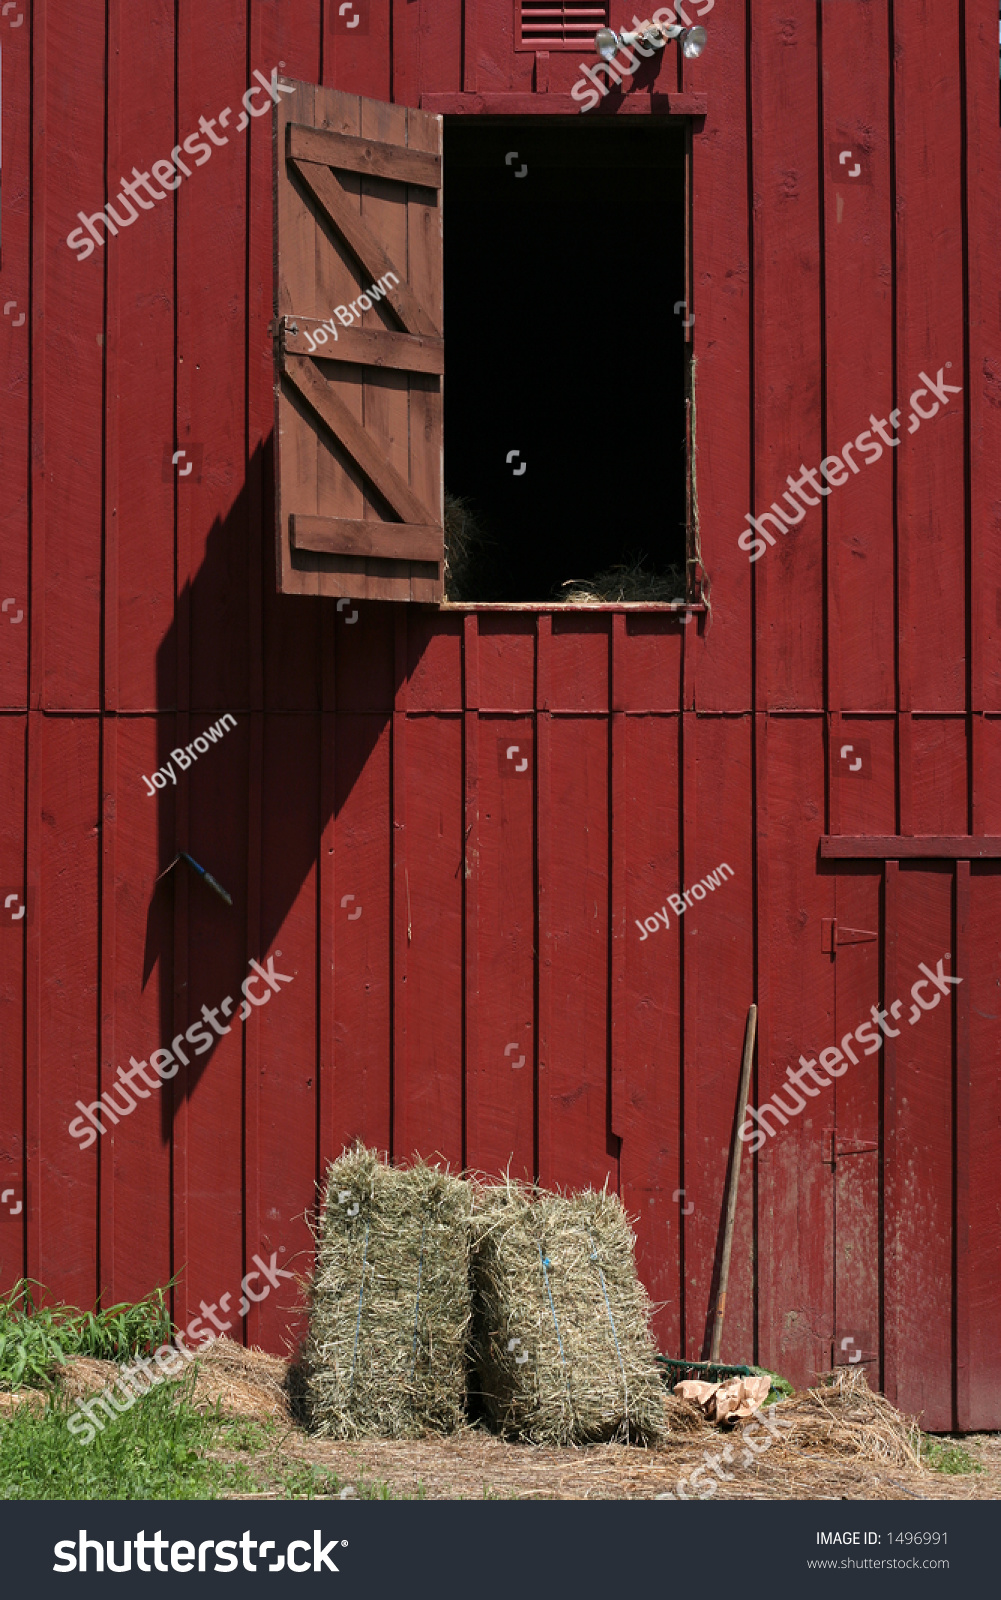 red barn with hay and loft door open & Red Barn Hay Loft Door Open Stock Photo 1496991 - Shutterstock pezcame.com